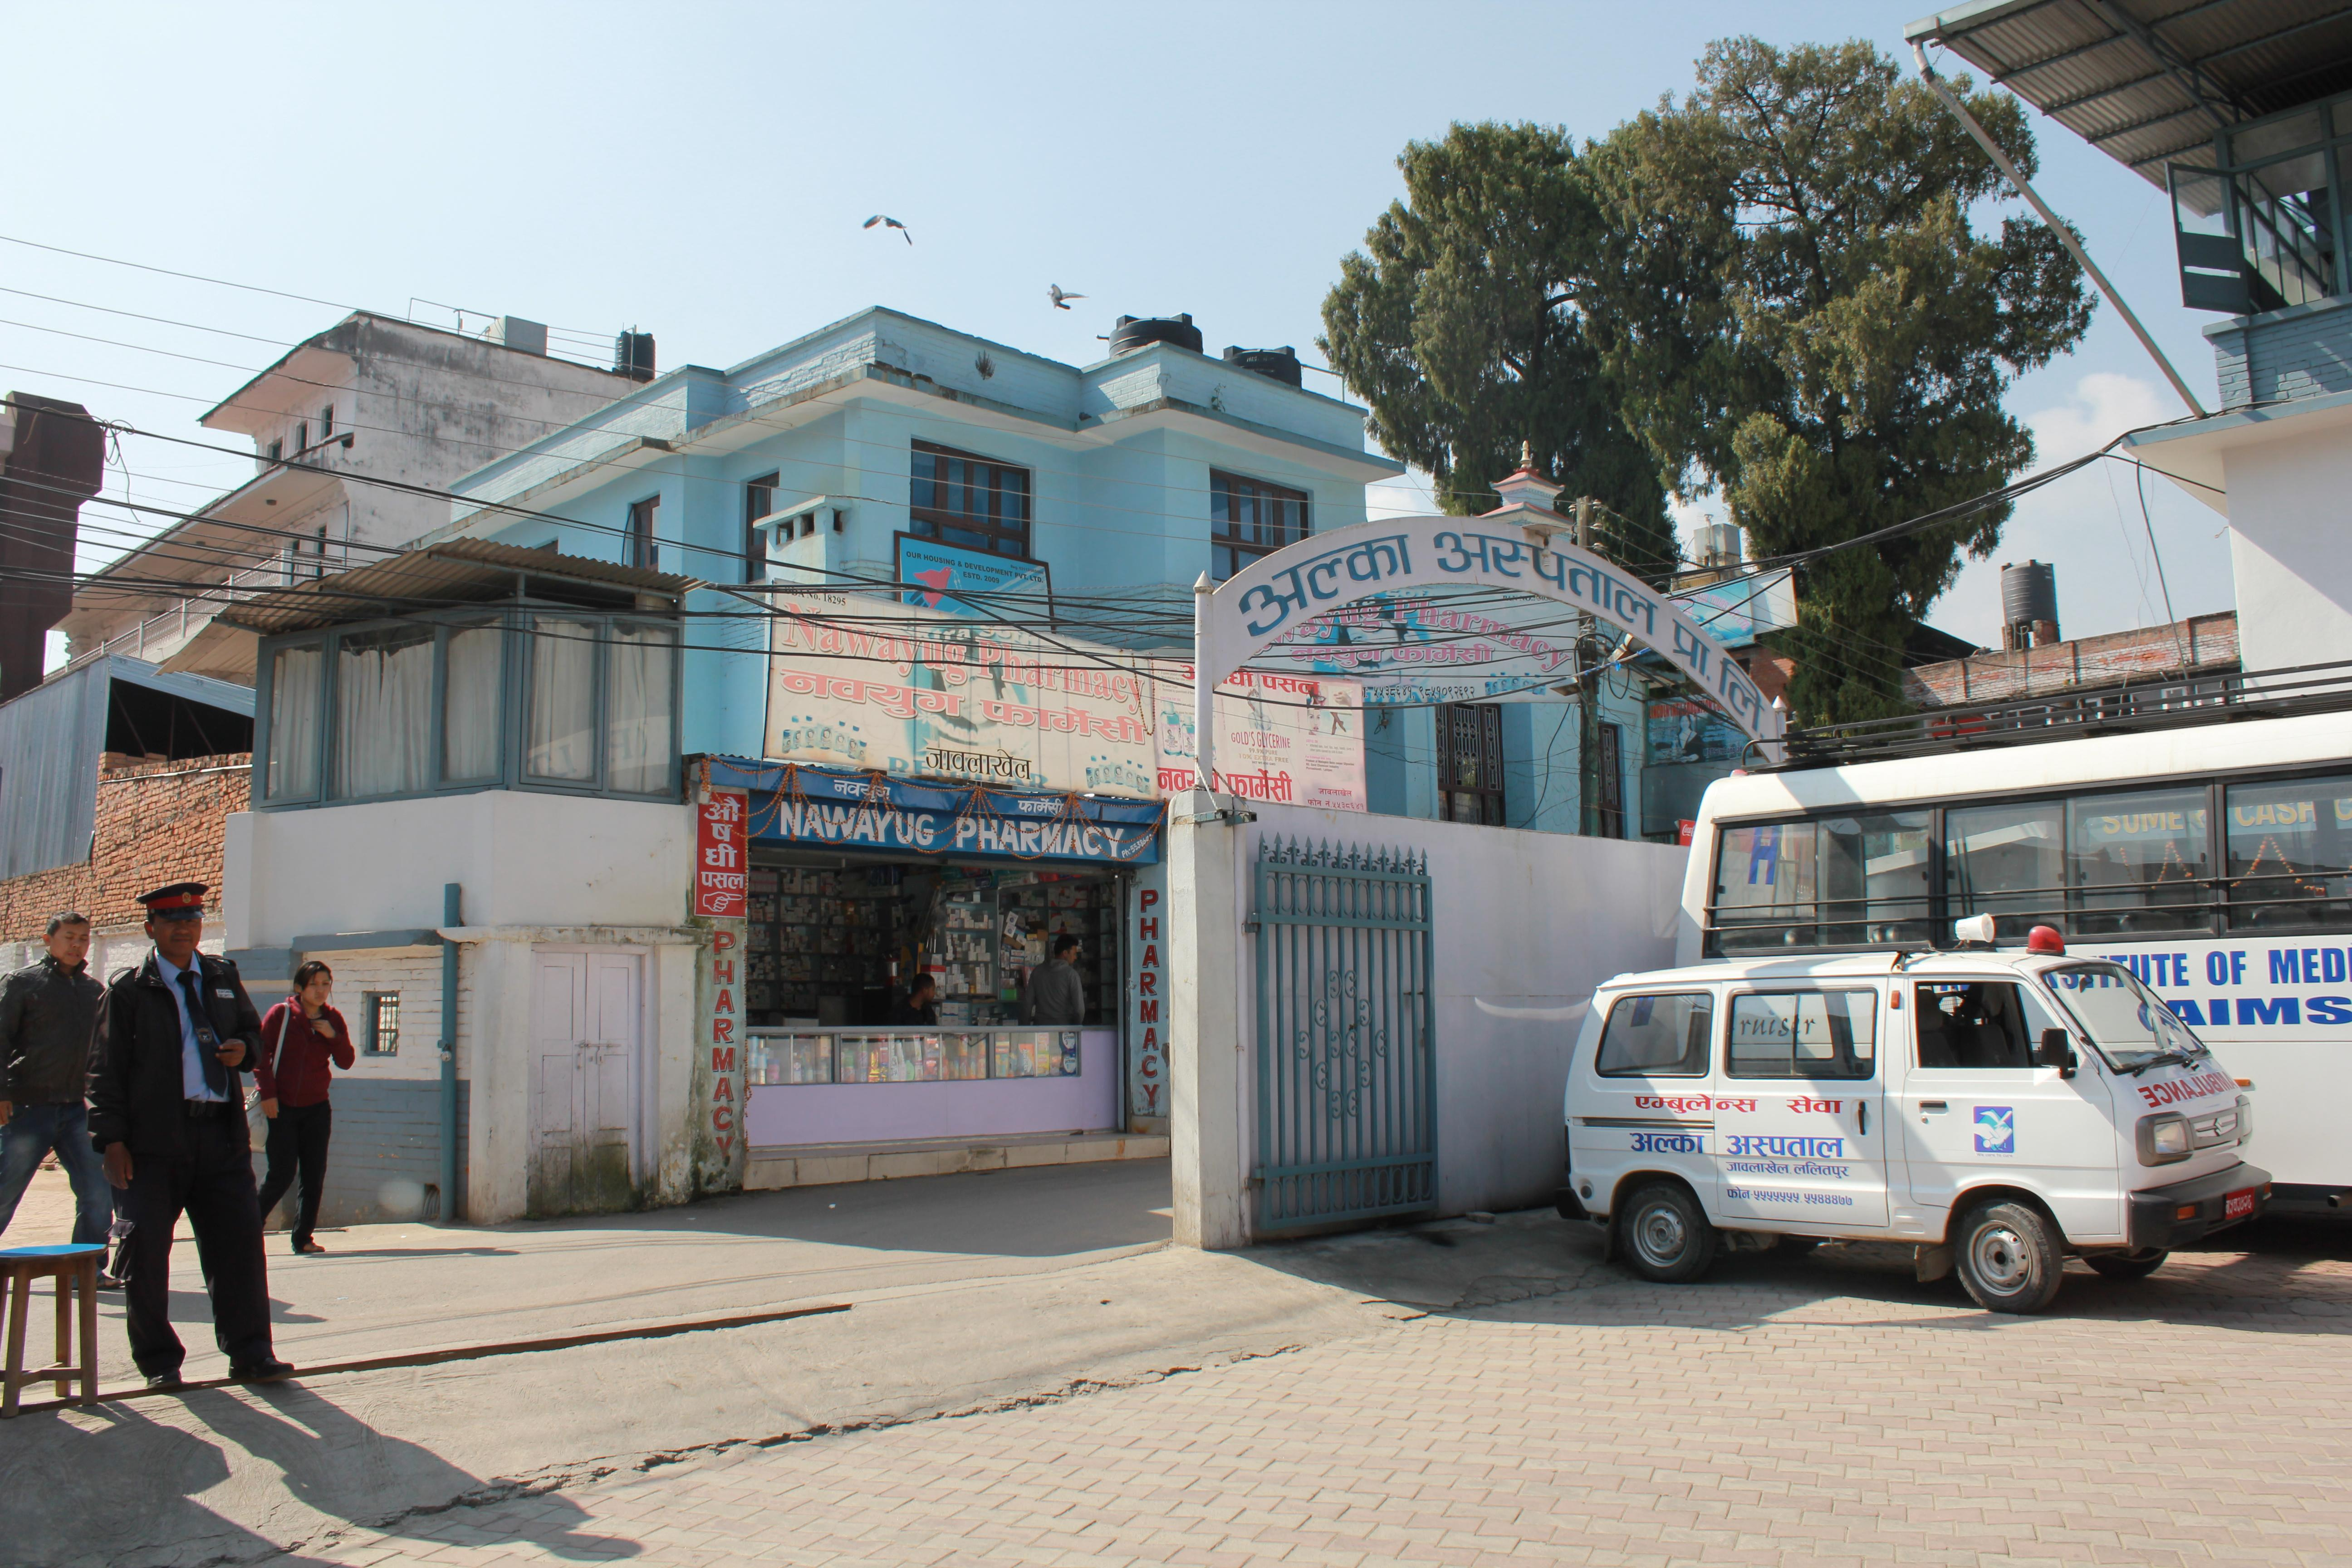 A hospital in Chitwan, Nepal, where Projects Abroad places medical interns.